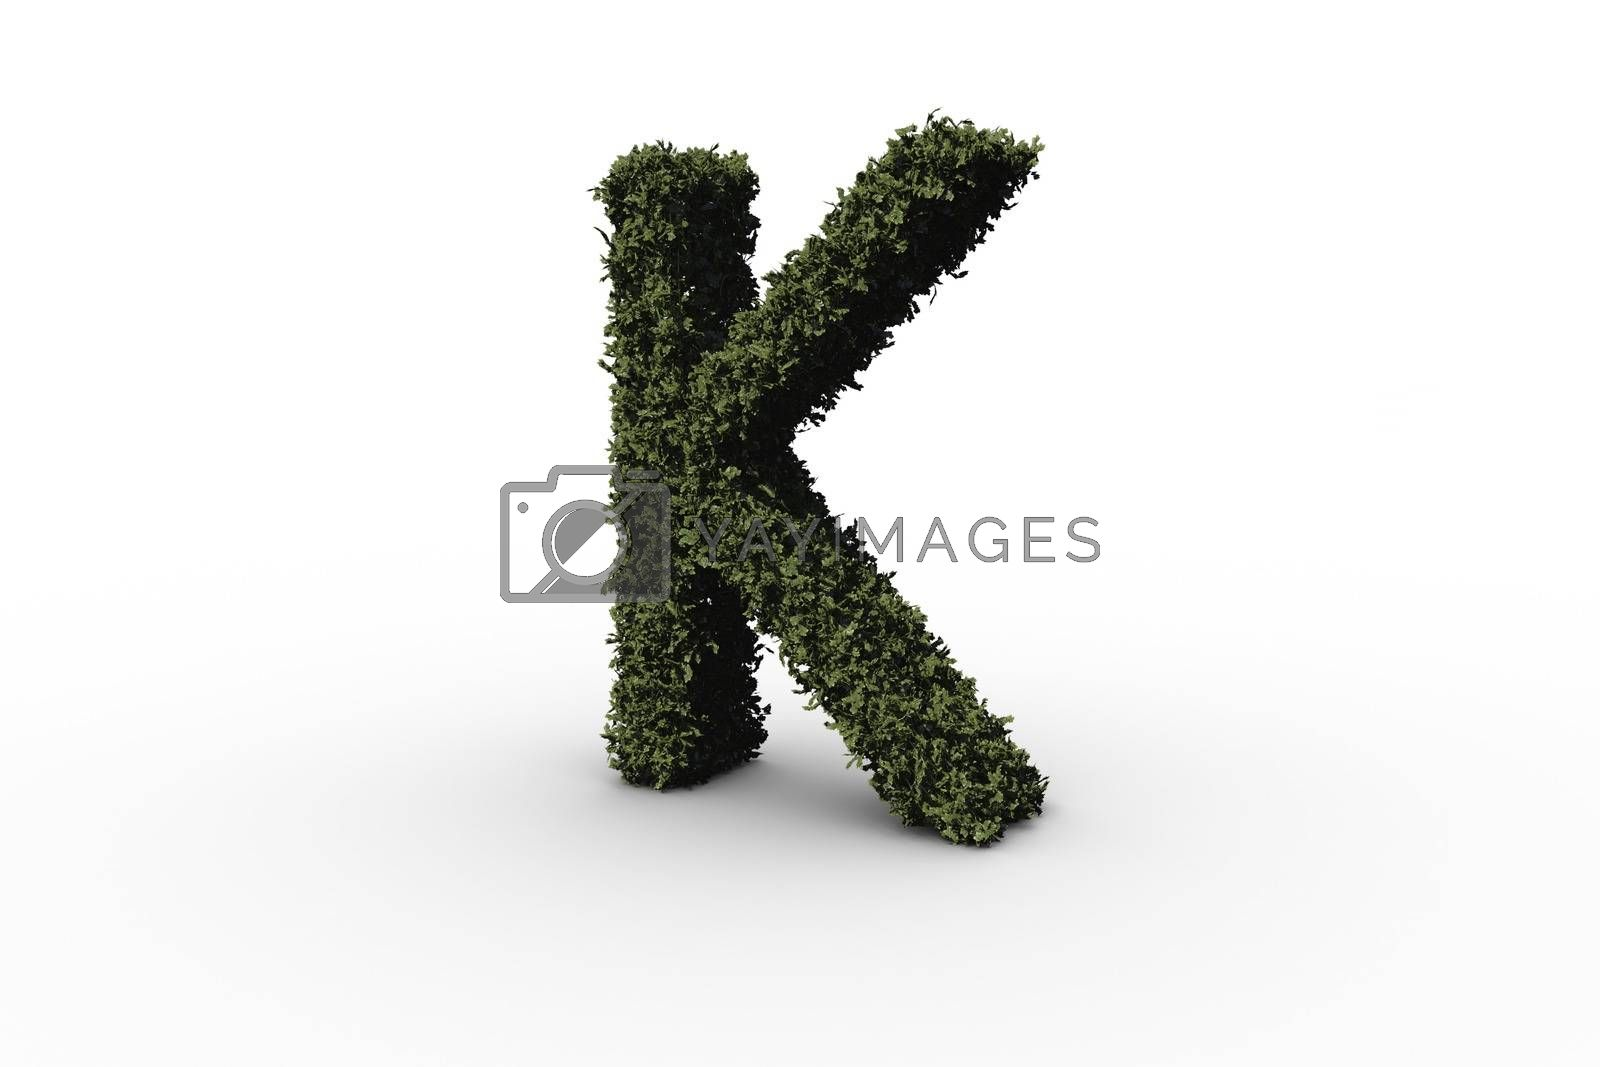 Royalty free image of Capital letter k made of leaves by Wavebreakmedia